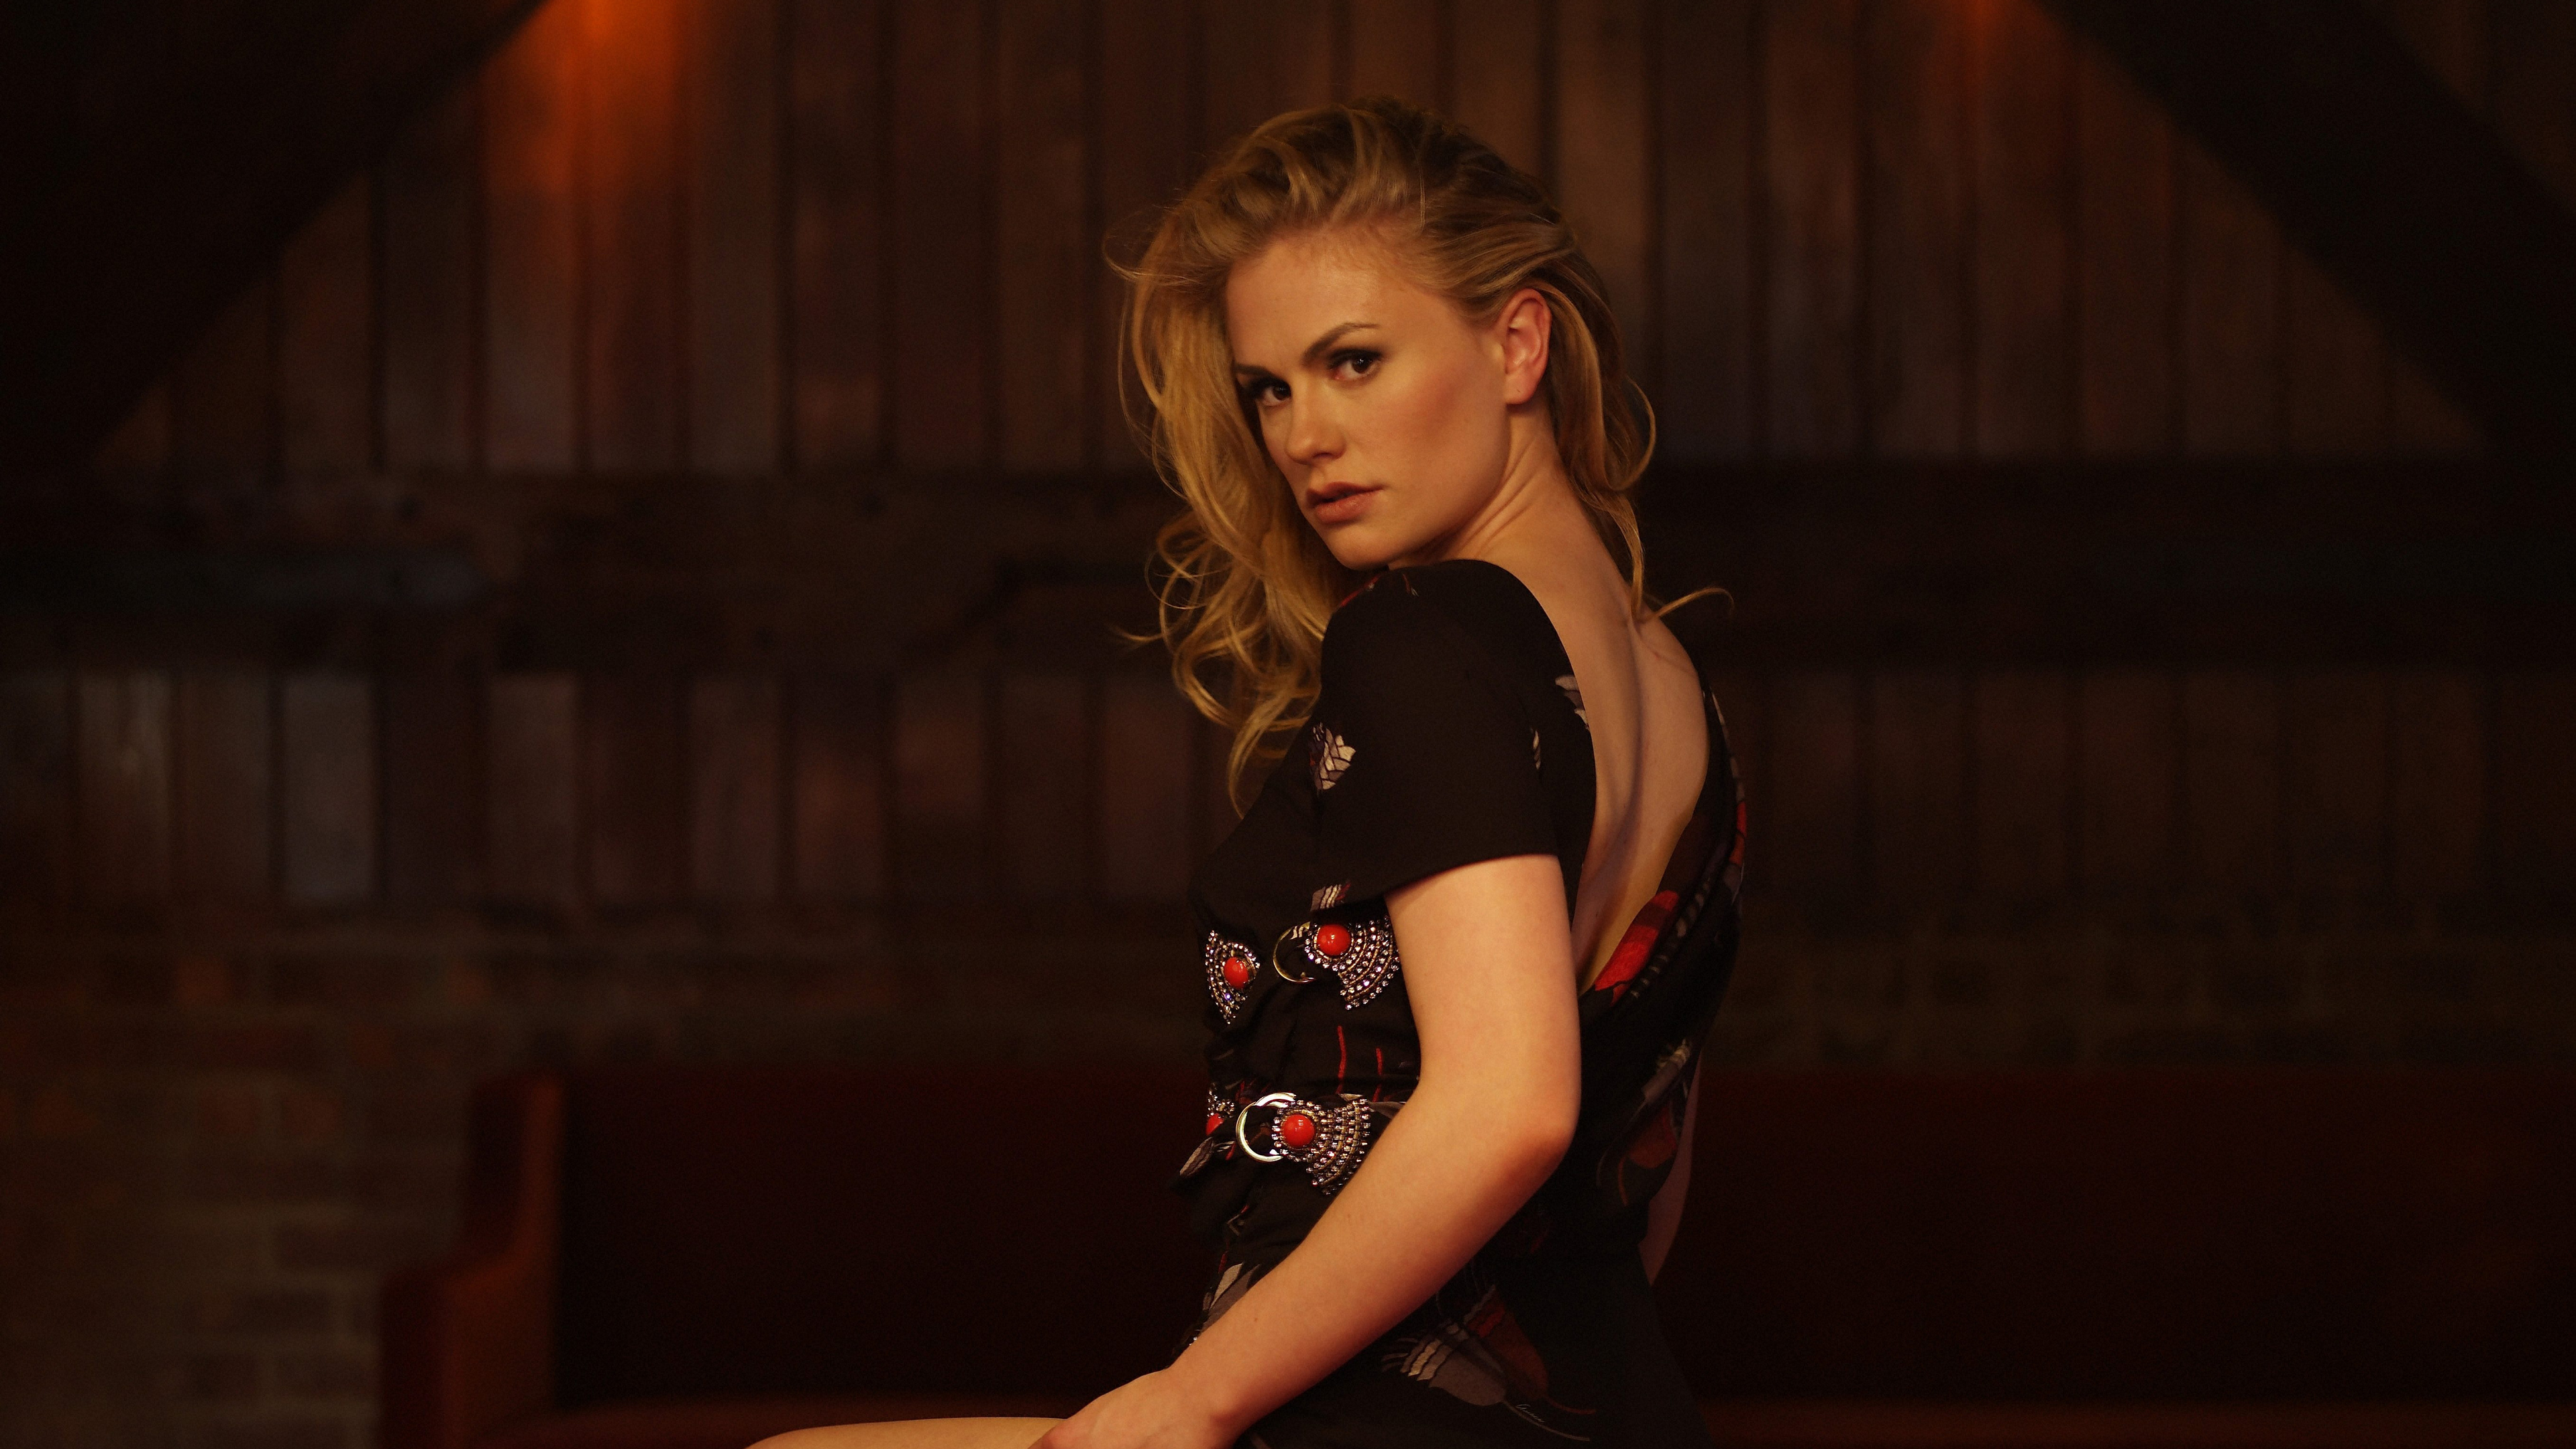 anna paquin 4k 1542236199 - Anna Paquin 4k - hd-wallpapers, girls wallpapers, celebrities wallpapers, anna paquin wallpapers, 4k-wallpapers